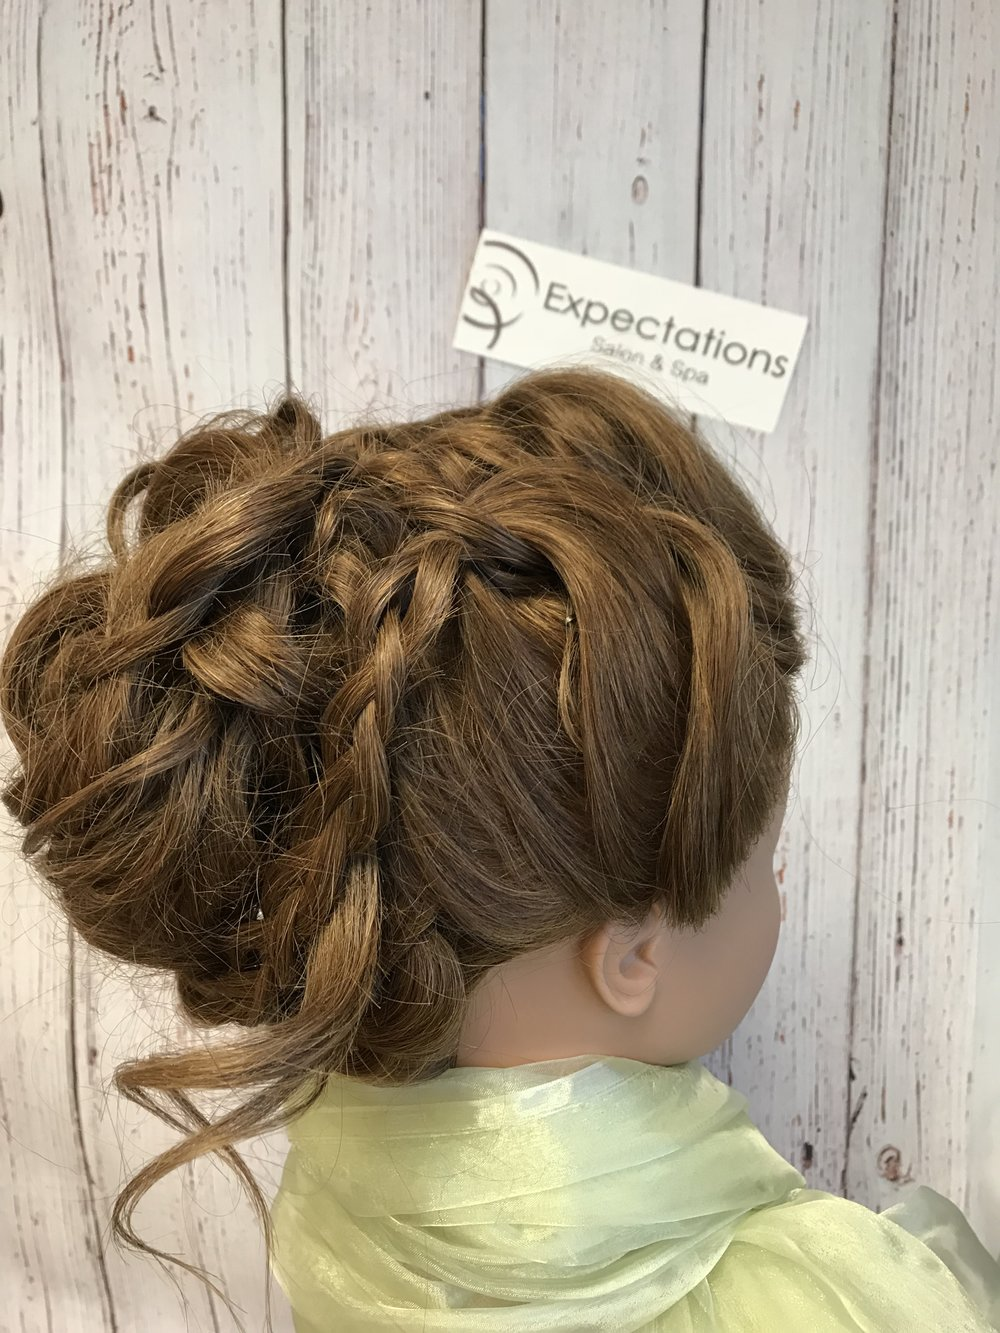 game of thrones inspired updo by teri2.jpg